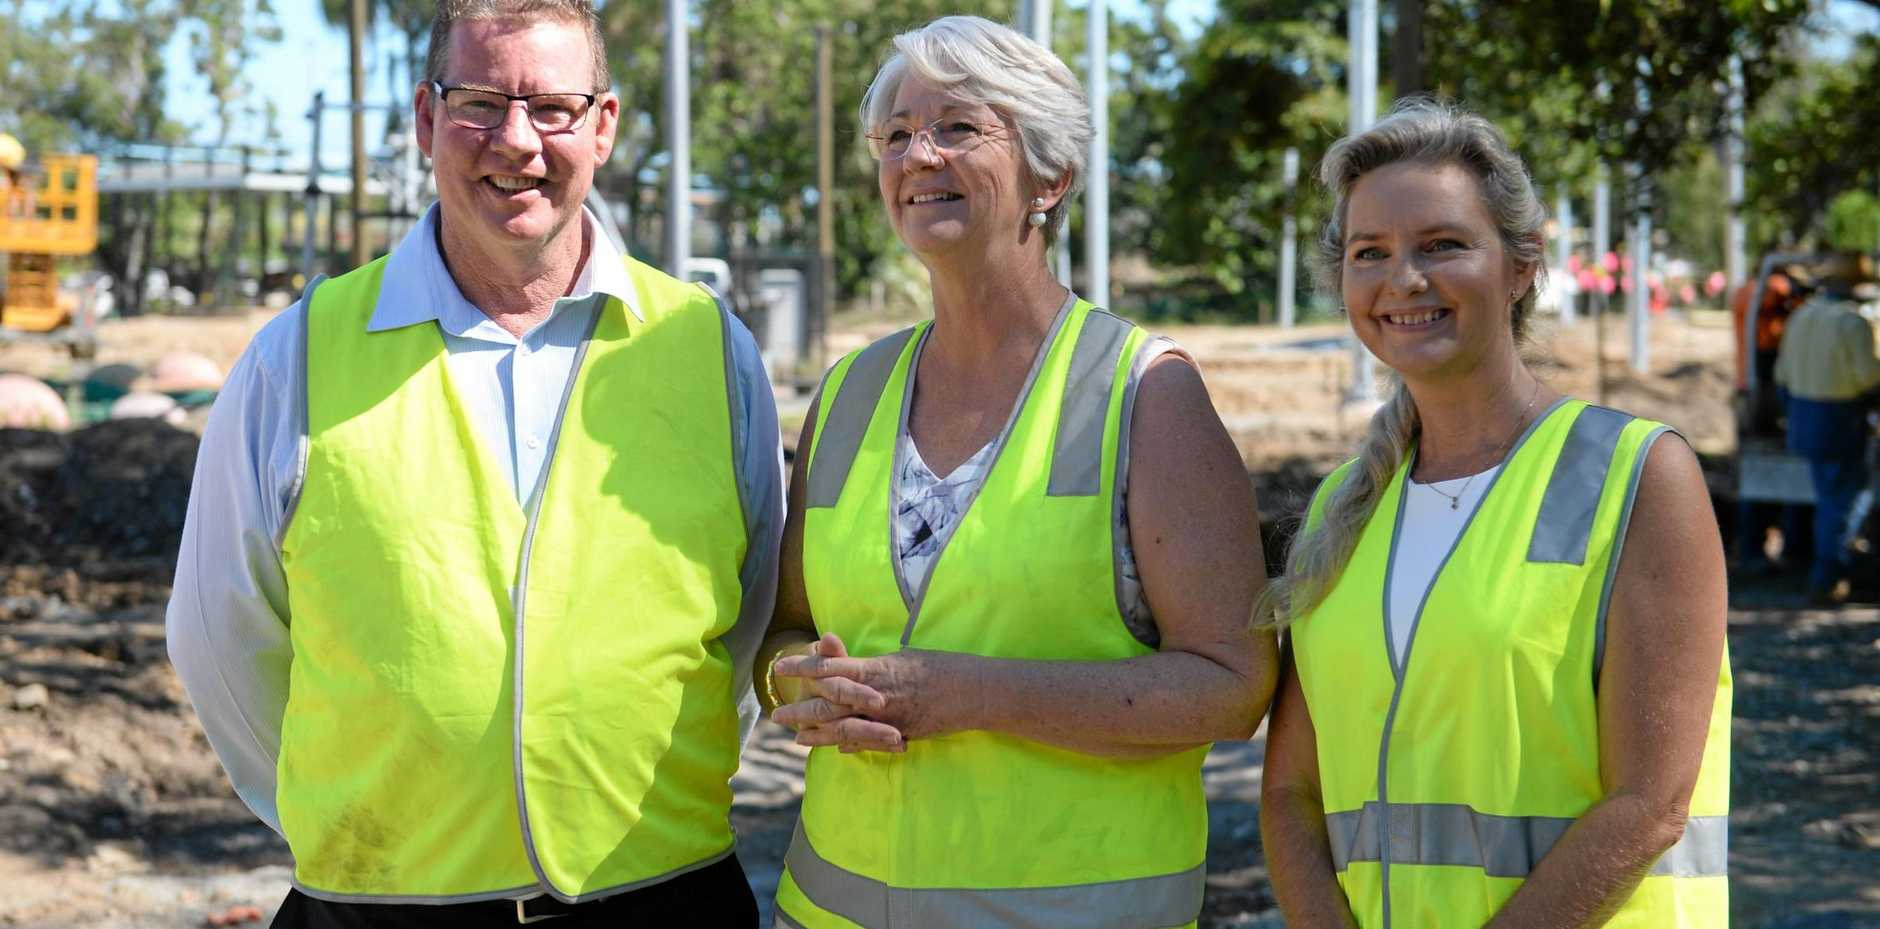 Member for Rockhampton Barry O'Rourke, Mayor Margaret Strelow and Cr Cherie Rutherford at Kershaw Gardens.